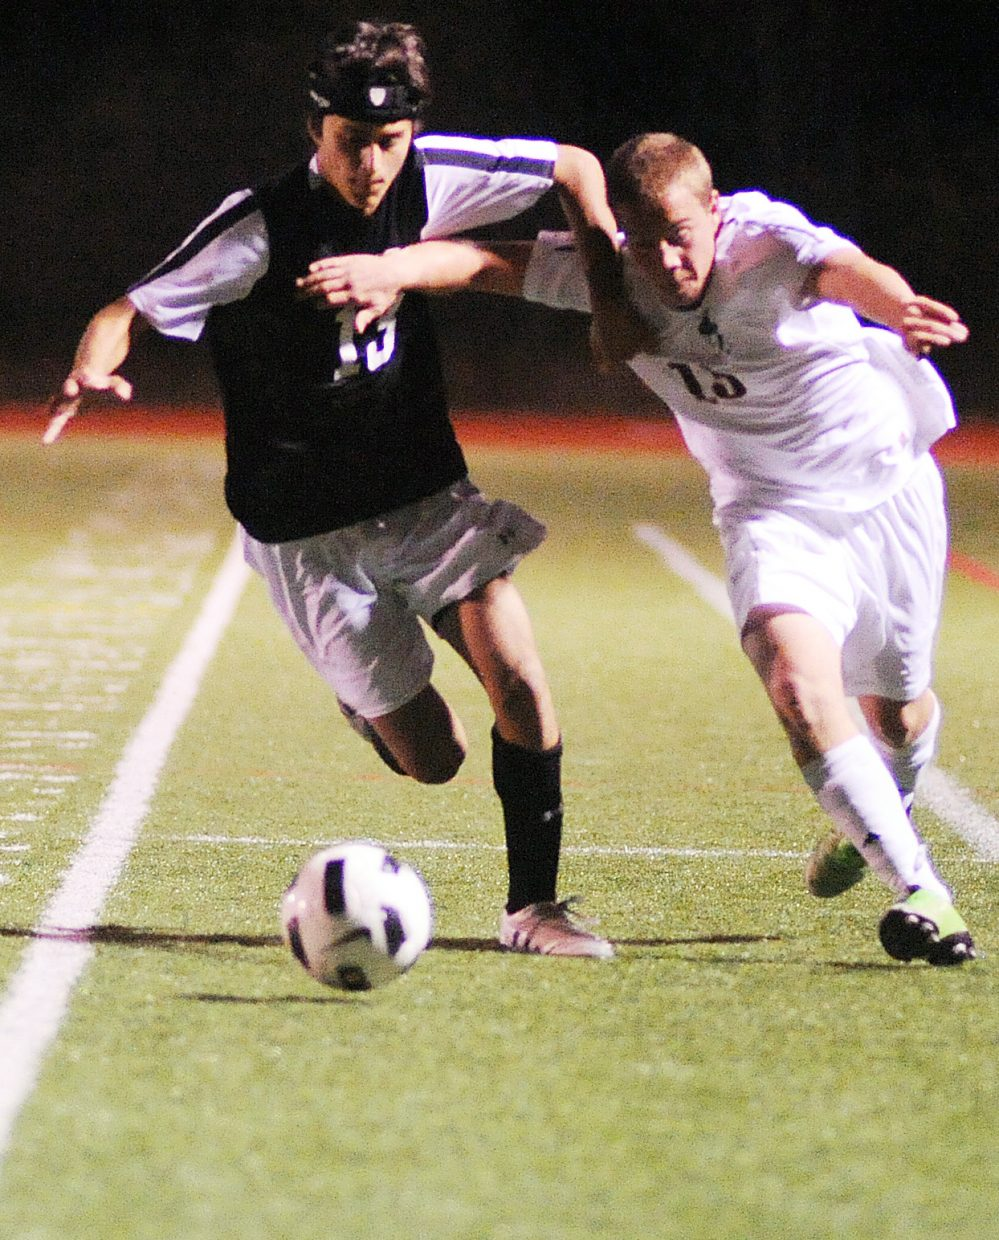 Steamboat's Alex Alfone wrestles with a Colorado Academy player on a run to the ball Saturday night.